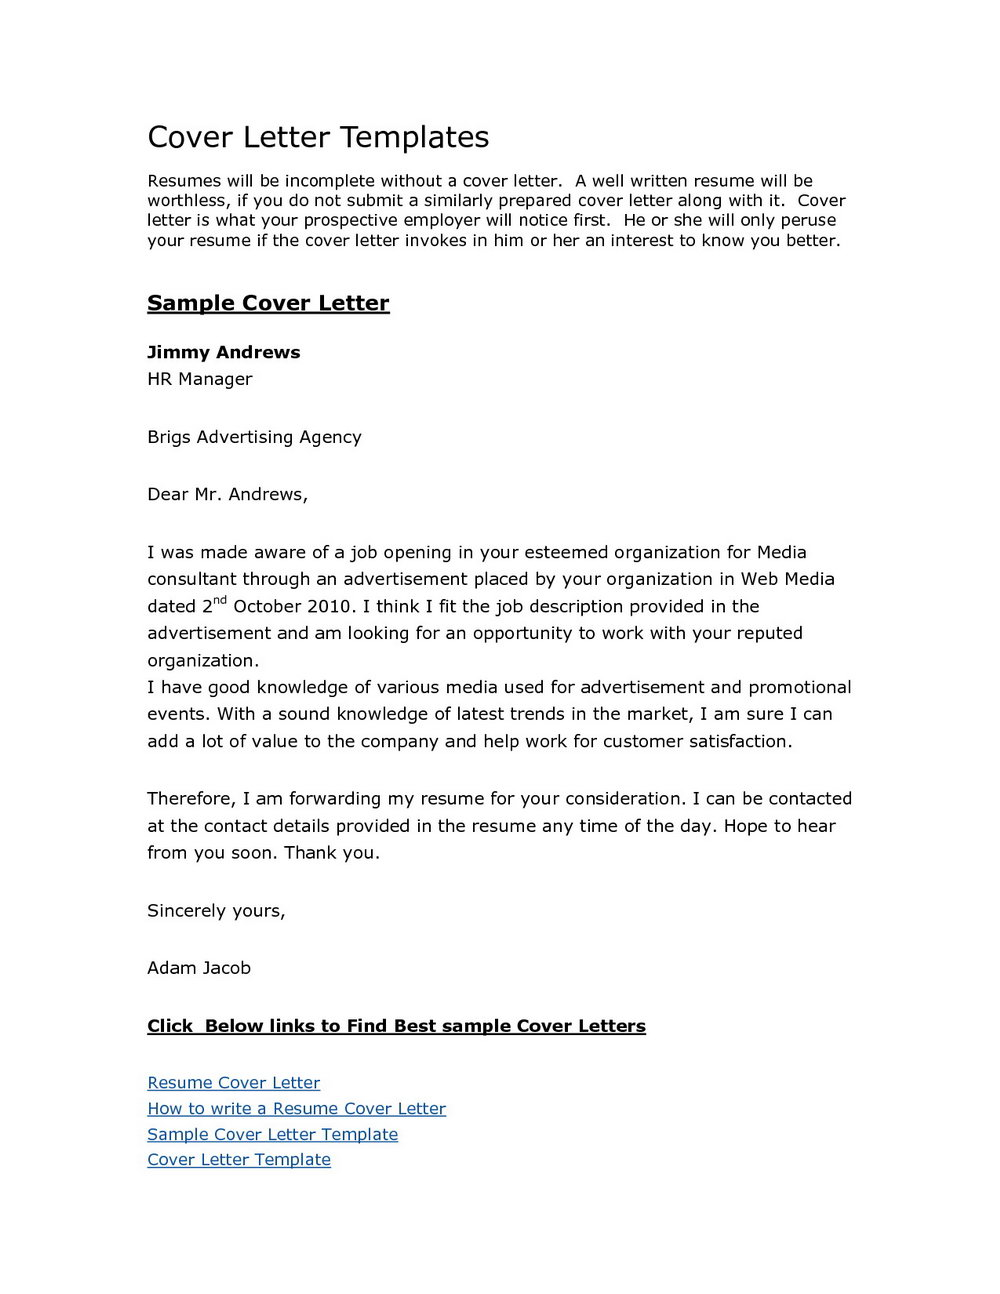 Invoice Cover Letter Templates Free